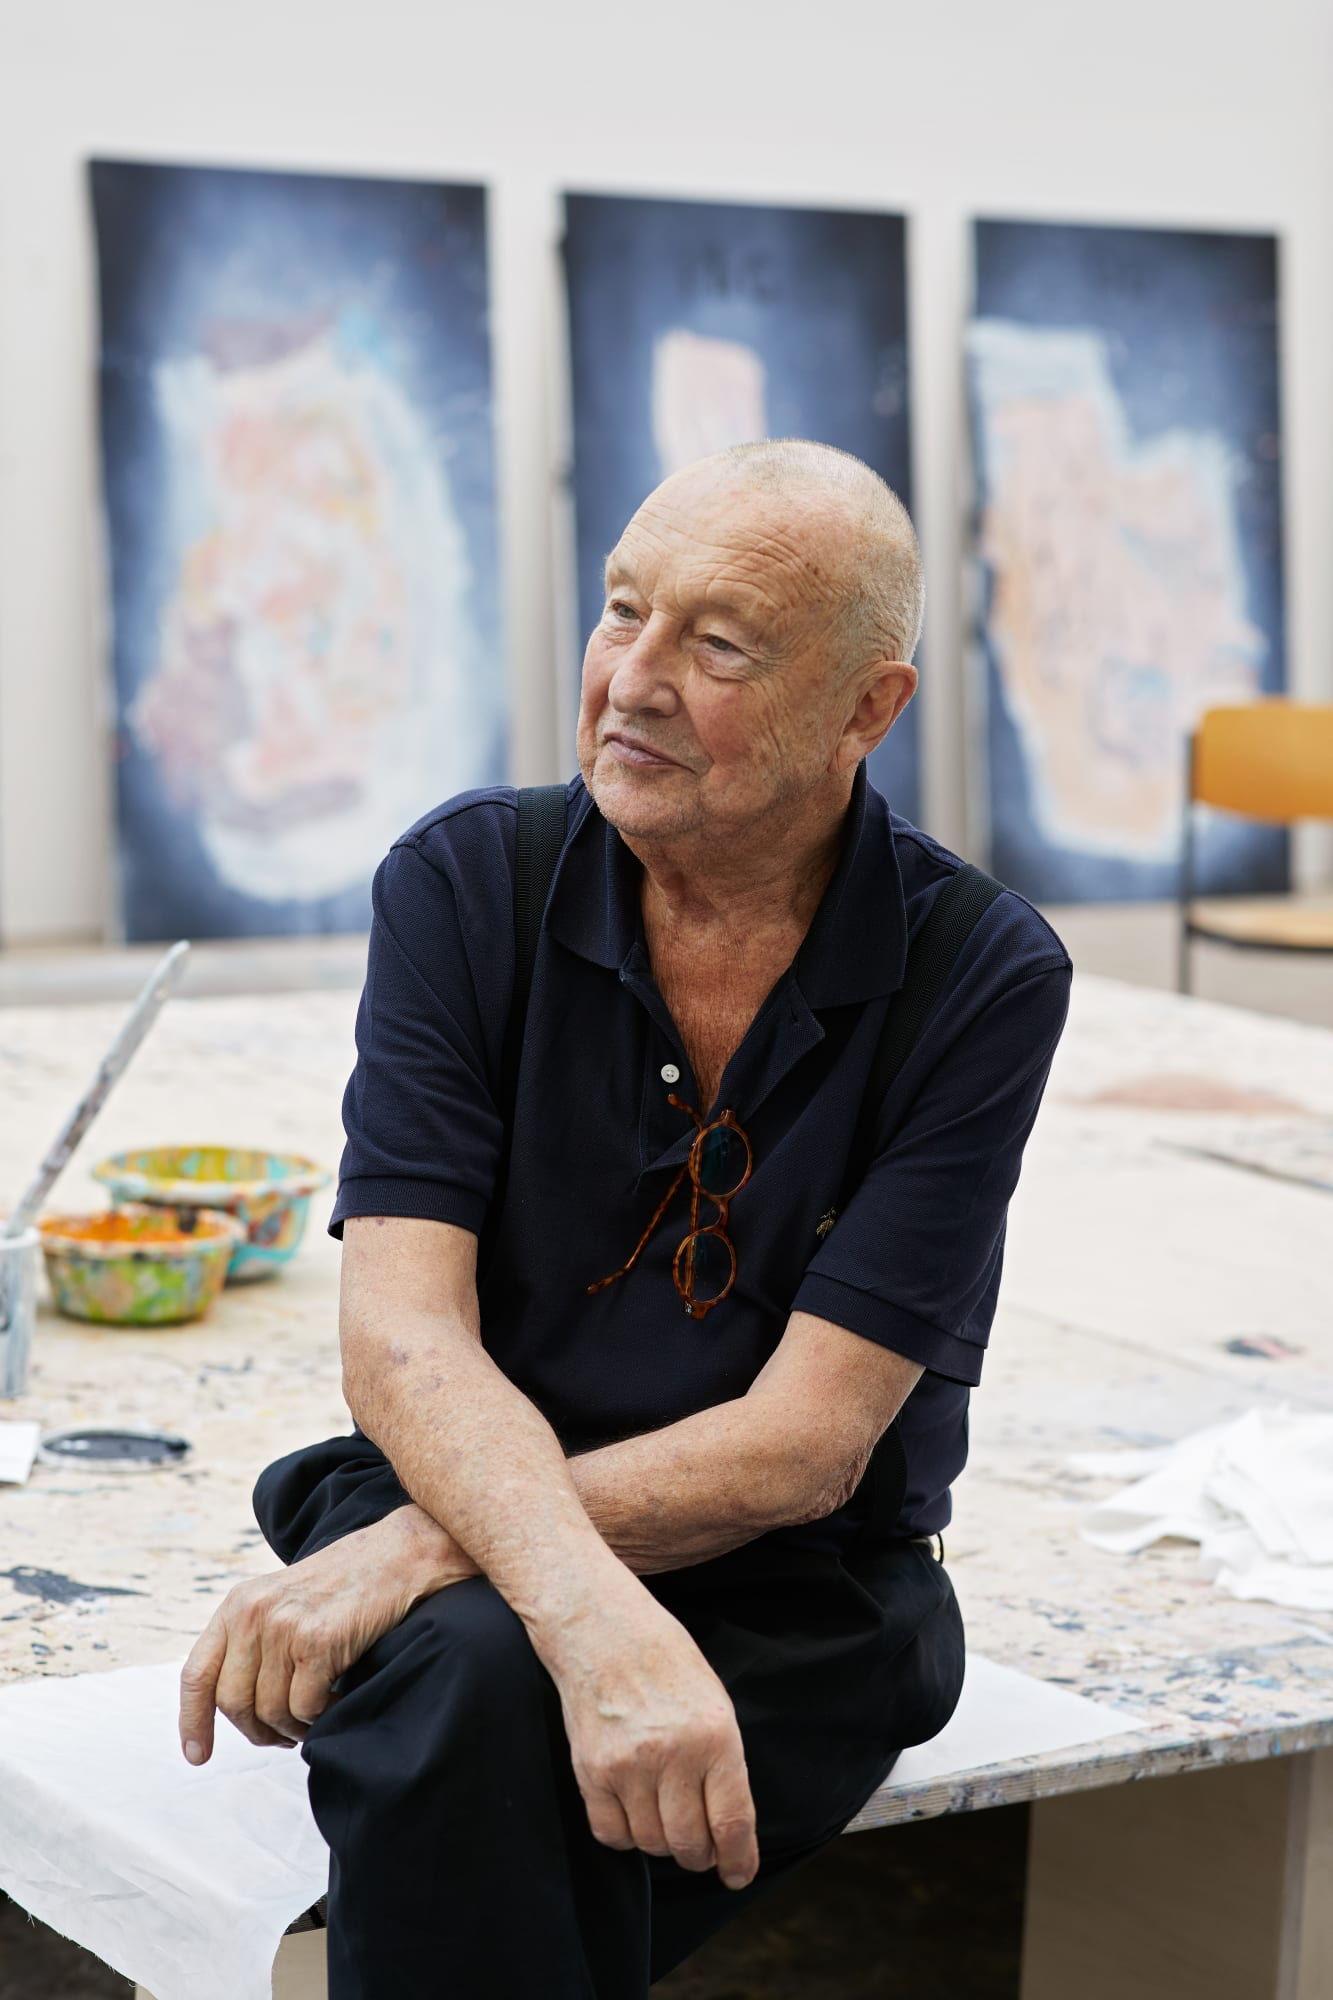 When everything turned upside down: Georg Baselitz donates six pathbreaking paintings to the Met